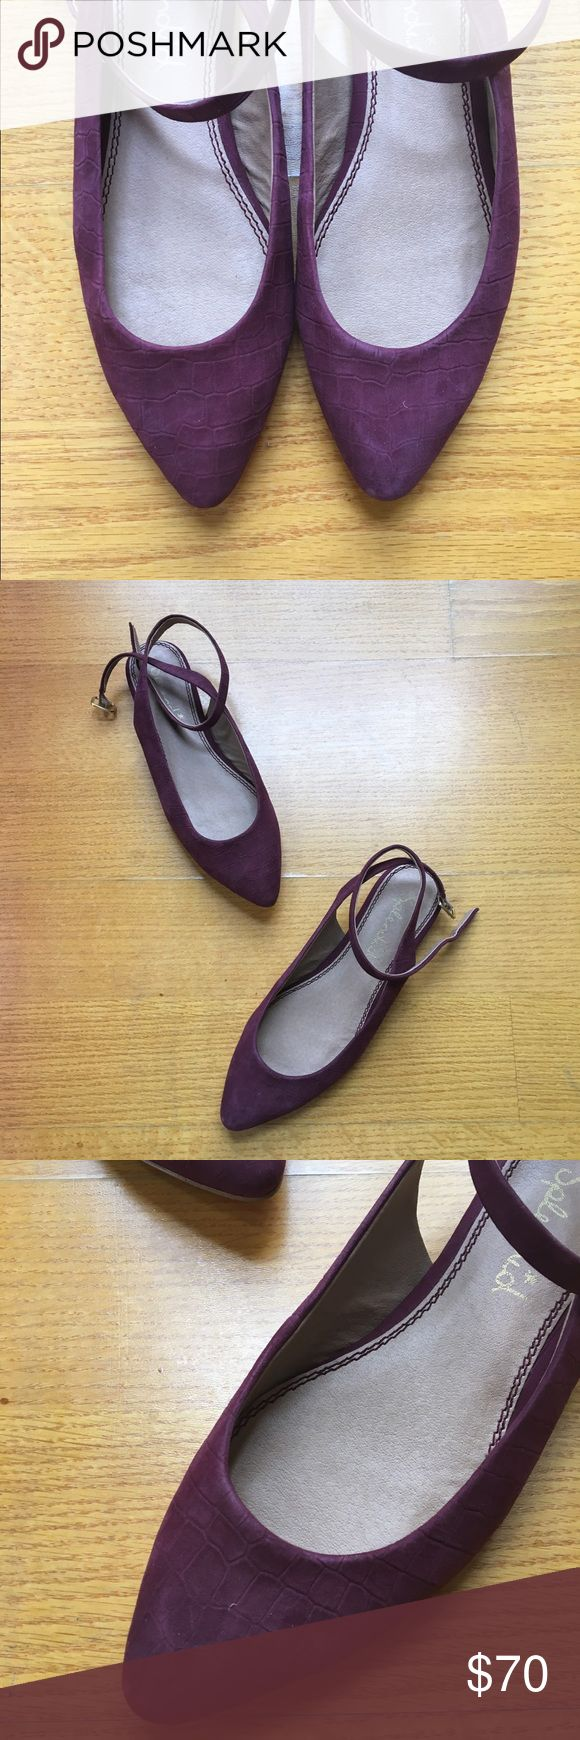 NWOT splendid flats Super cute flats from splendid. Maroon imprinted leather, only tried on. Strap wraps around ankle 💕 Splendid Shoes Flats & Loafers